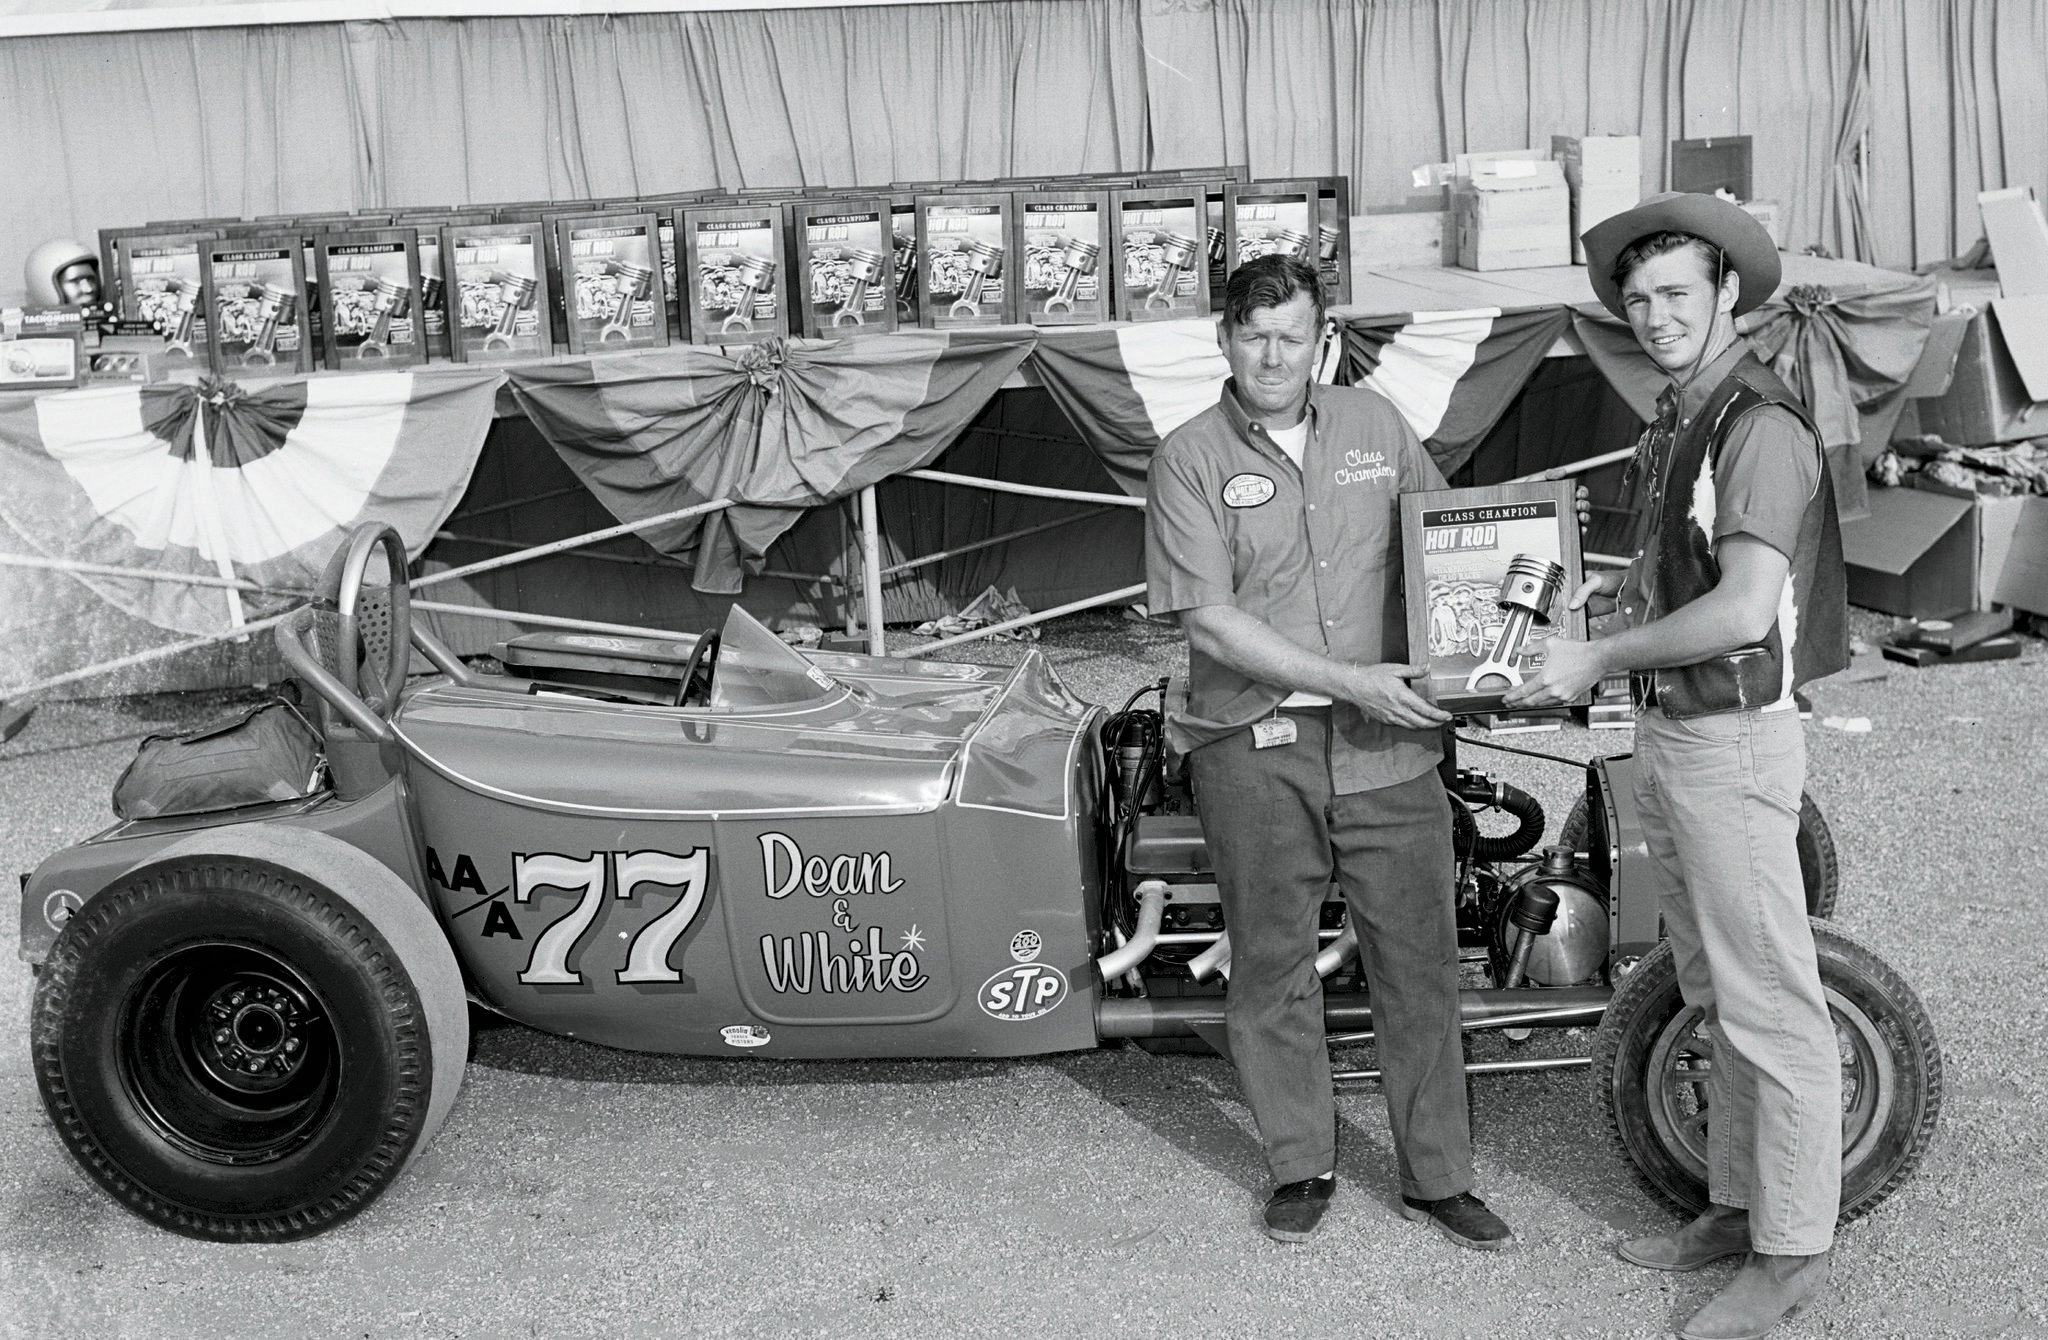 Nolan White, left, accepts his plaque for the class win at the '65 HRM Drags from Randy Boone, an actor in TV's The Virginian (which explains his goofy cowboy duds). That plaque, along with another White won at the HRM Drags in 1968, is still with the car.